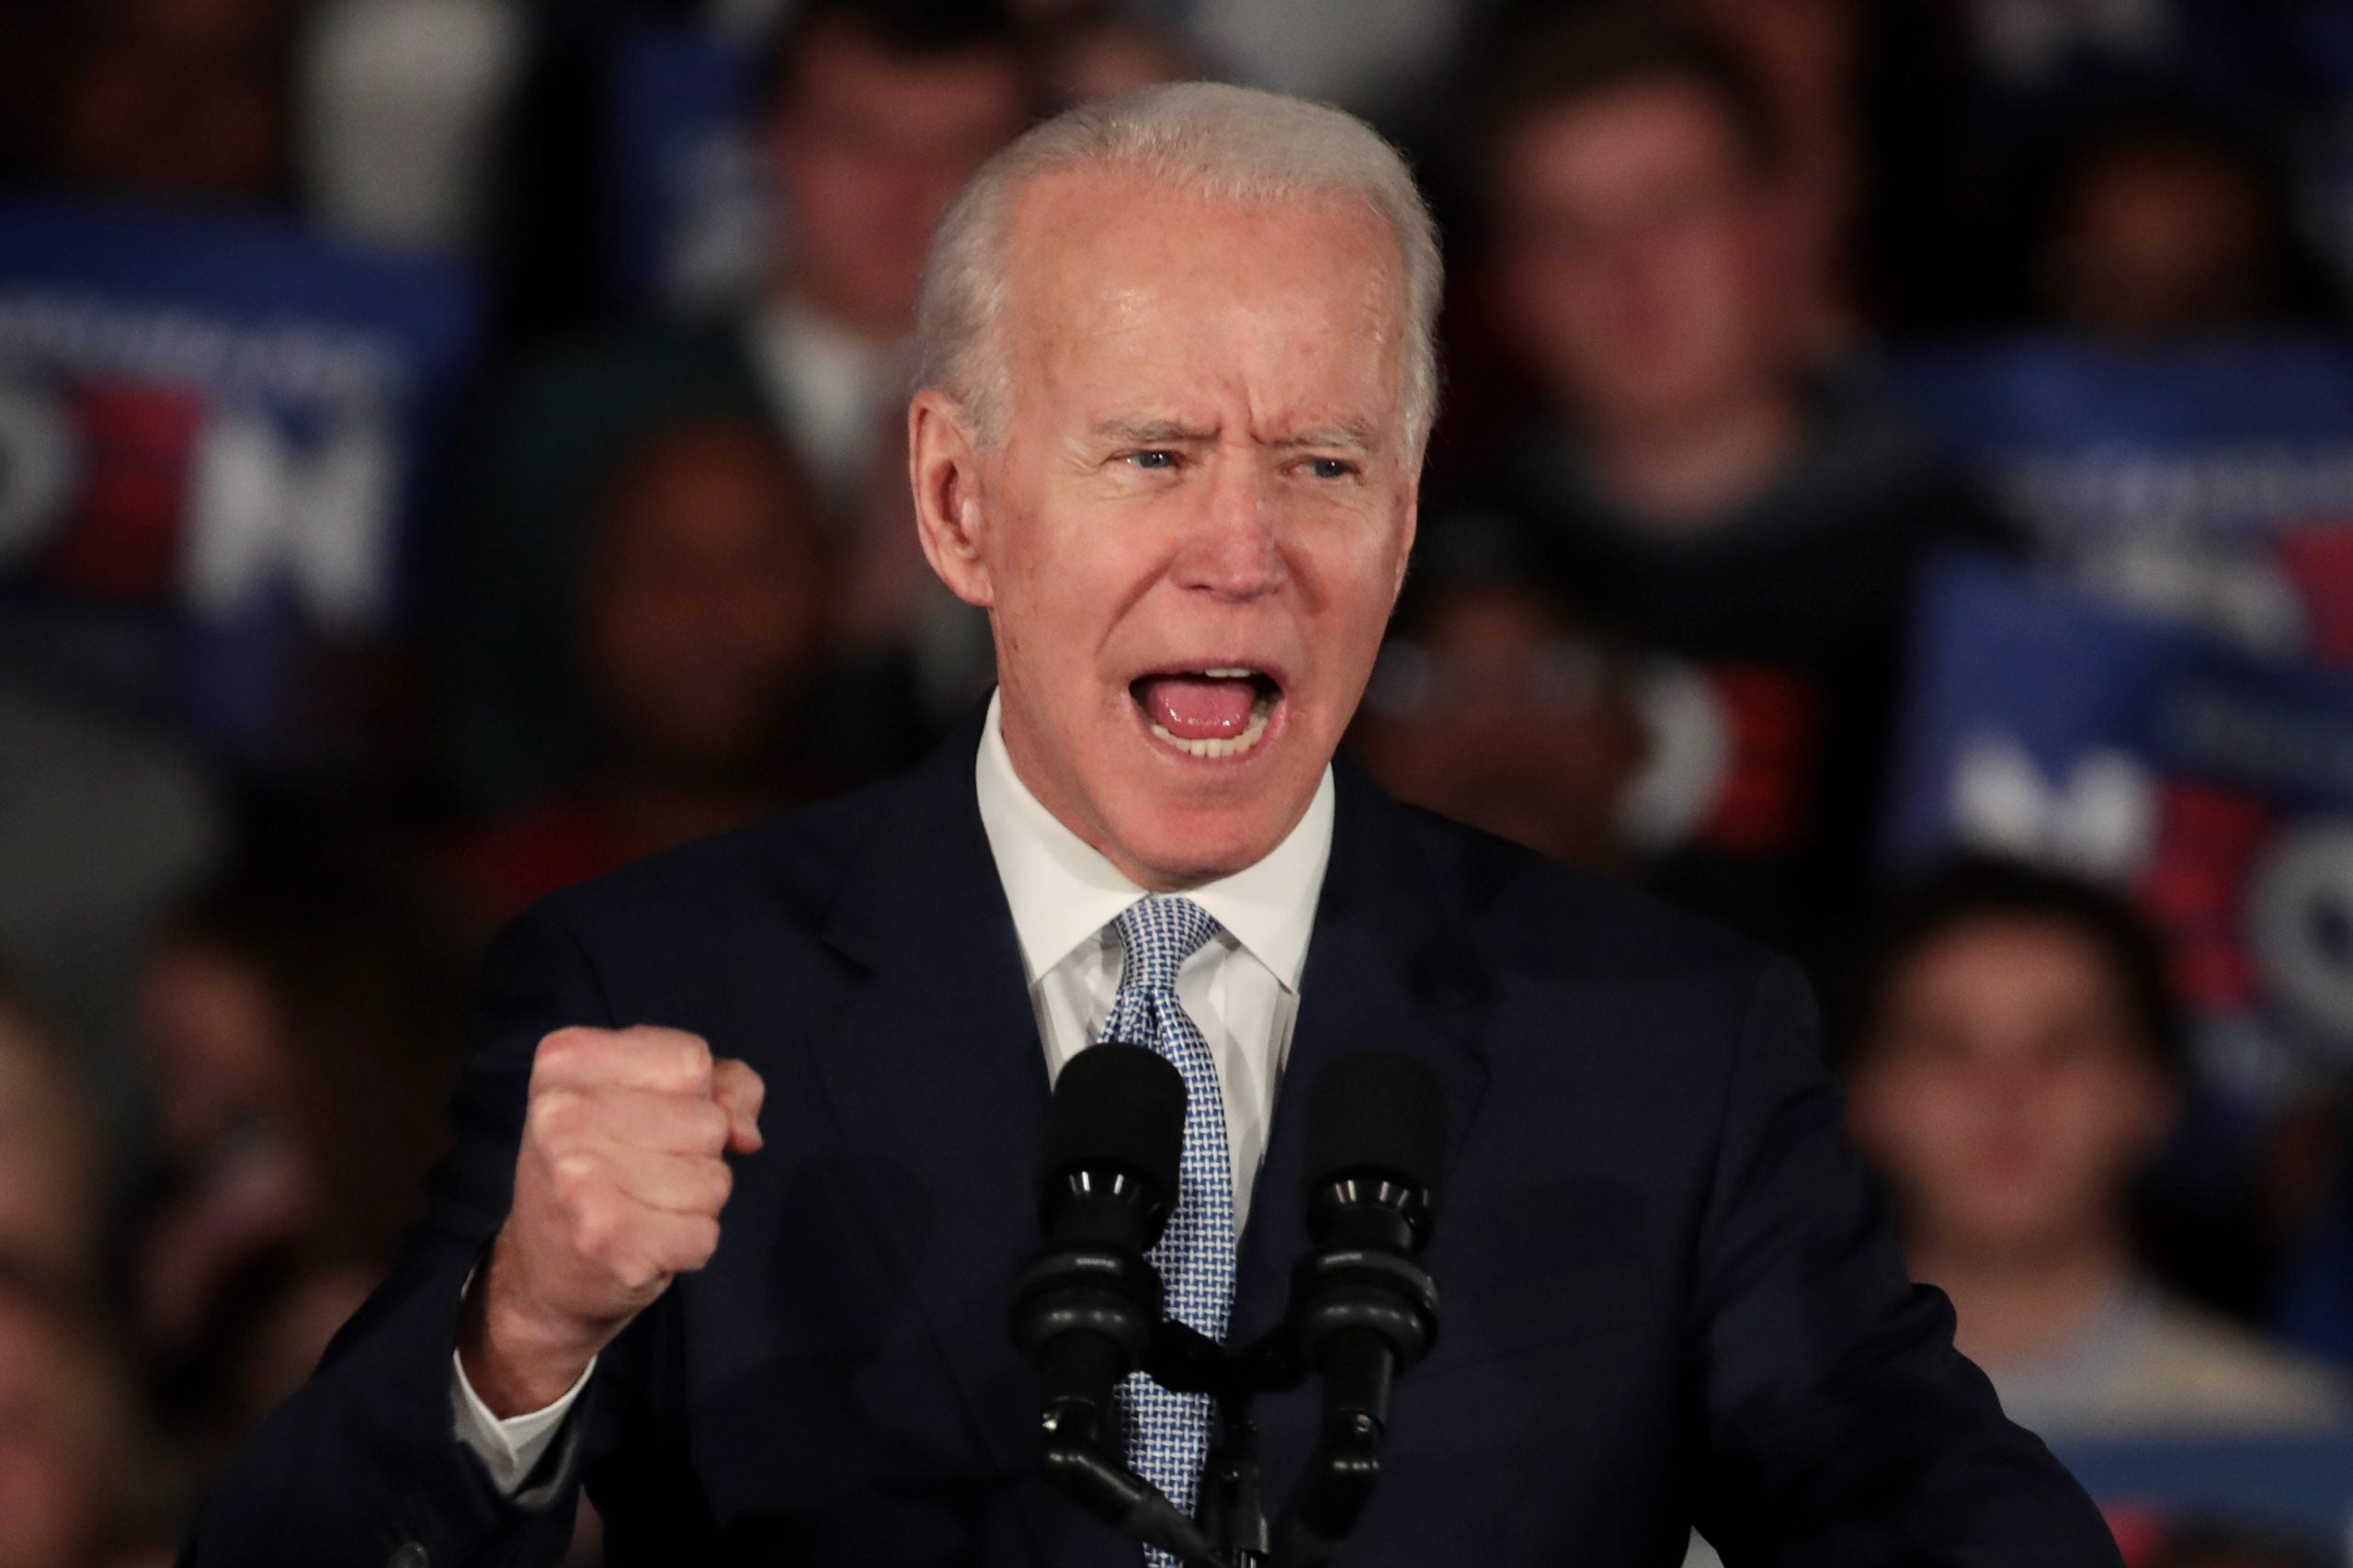 Joe Biden lays out his plan for Black America months after securing the Black vote in South Carolina